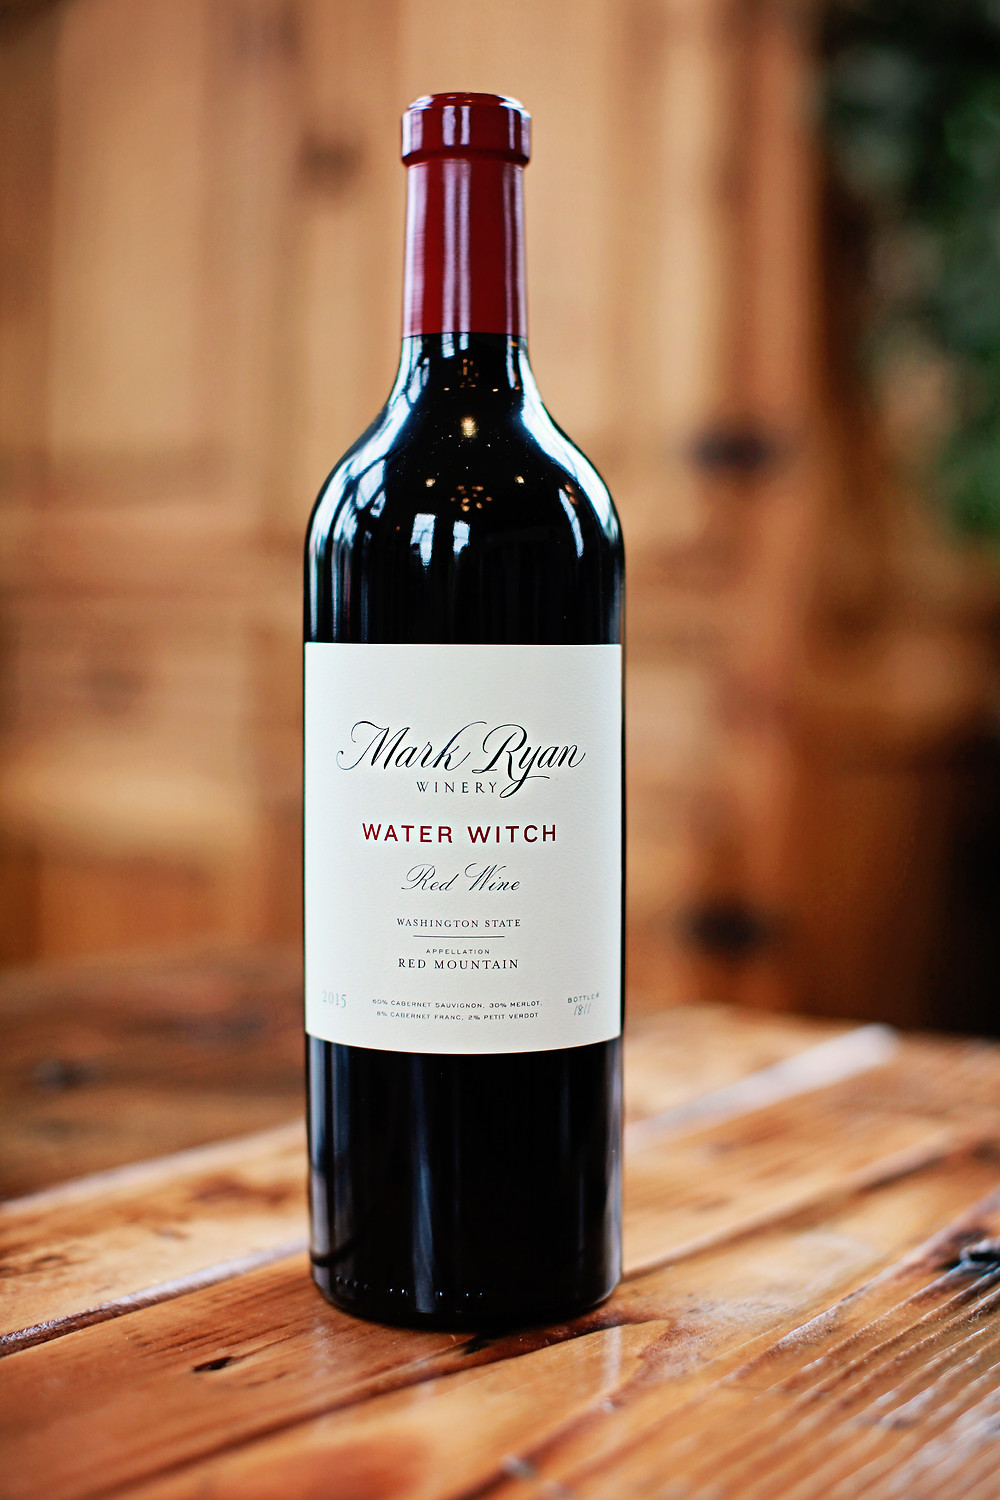 Mark Ryan Winery Water Witch served at happy hour at heirloom cookshop